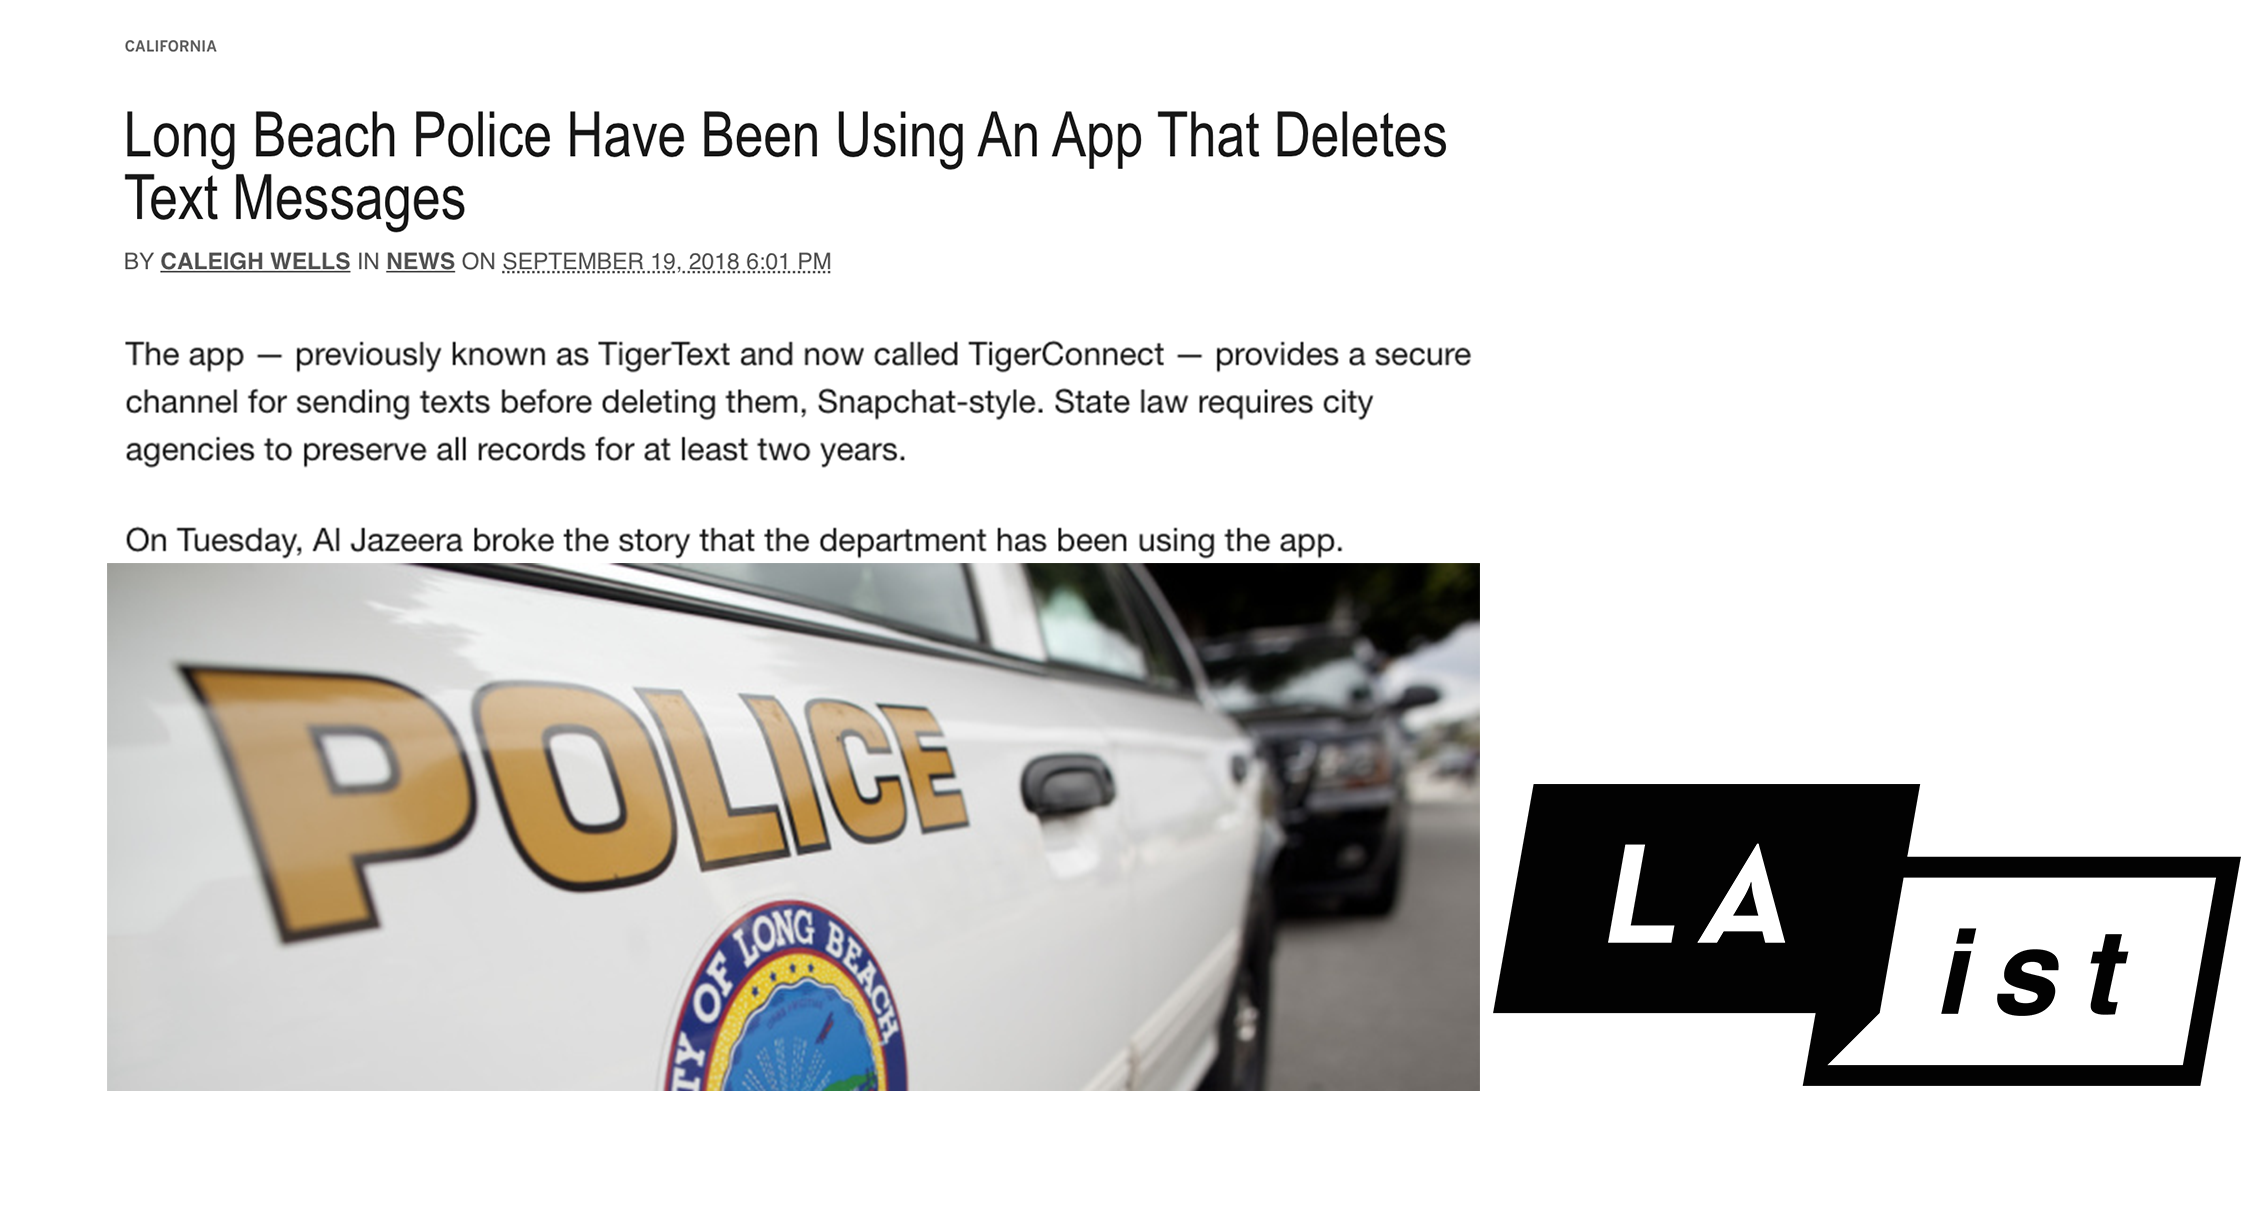 Long Beach Police Have Been Using An App That Deletes Text Messages